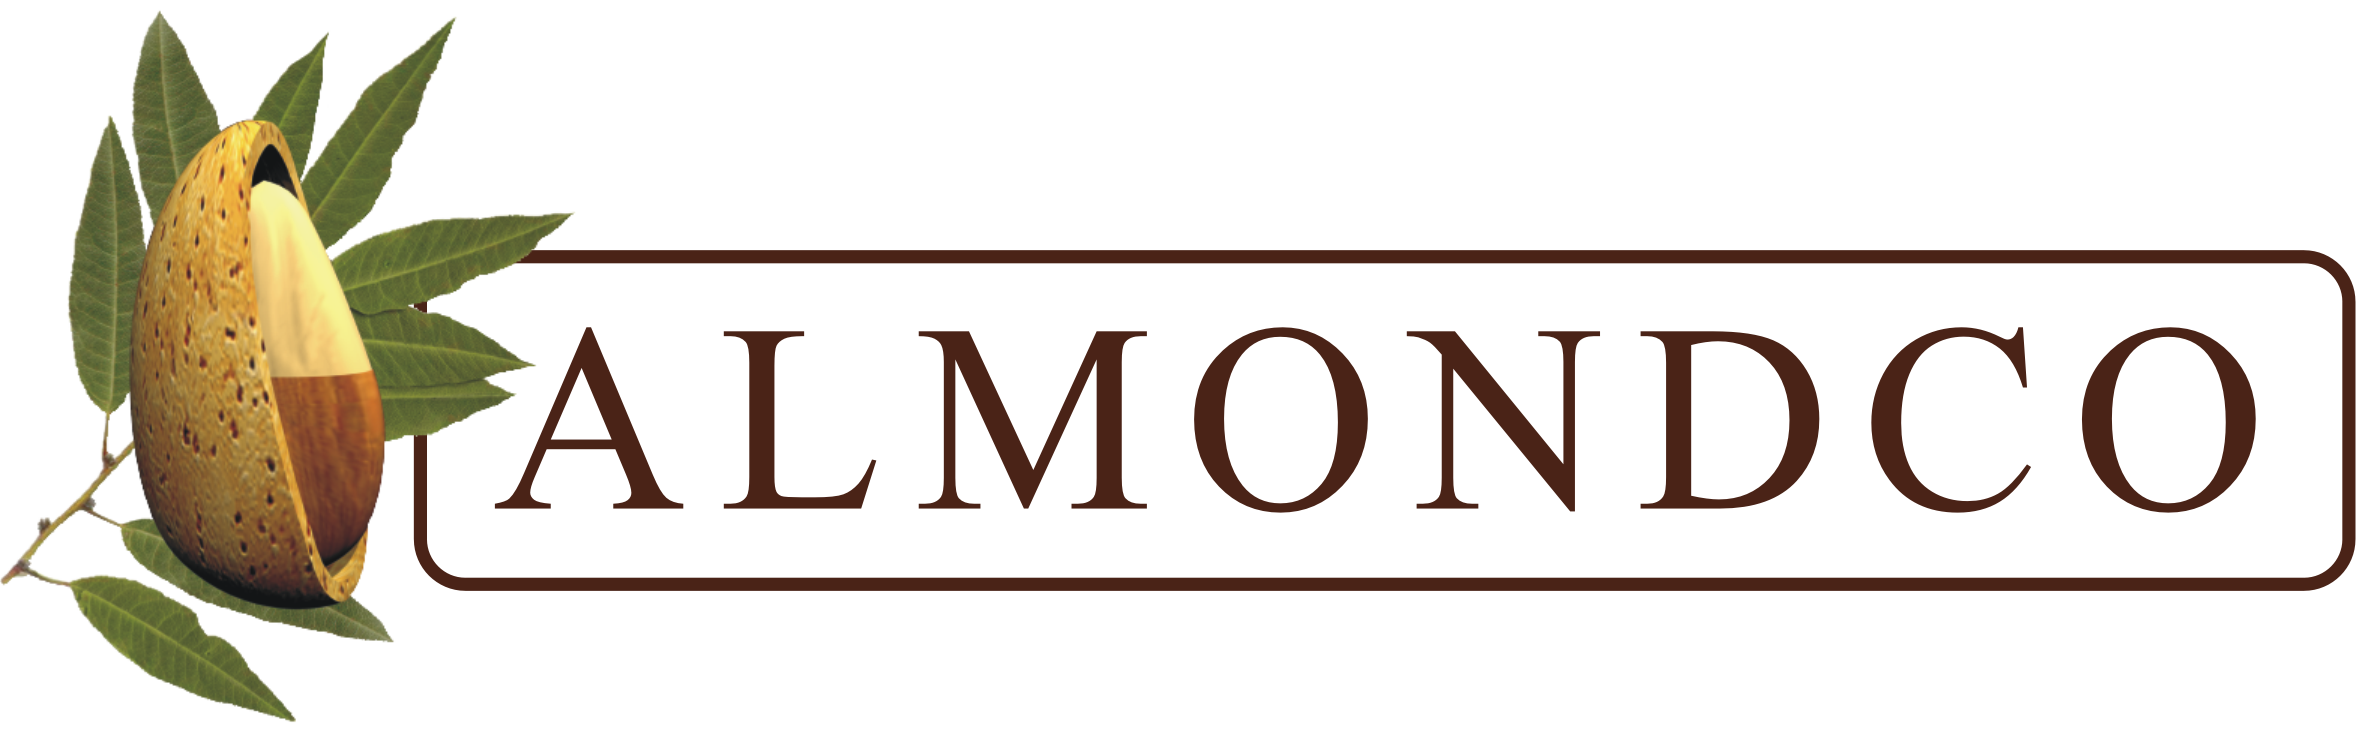 Almondco Australia Ltd